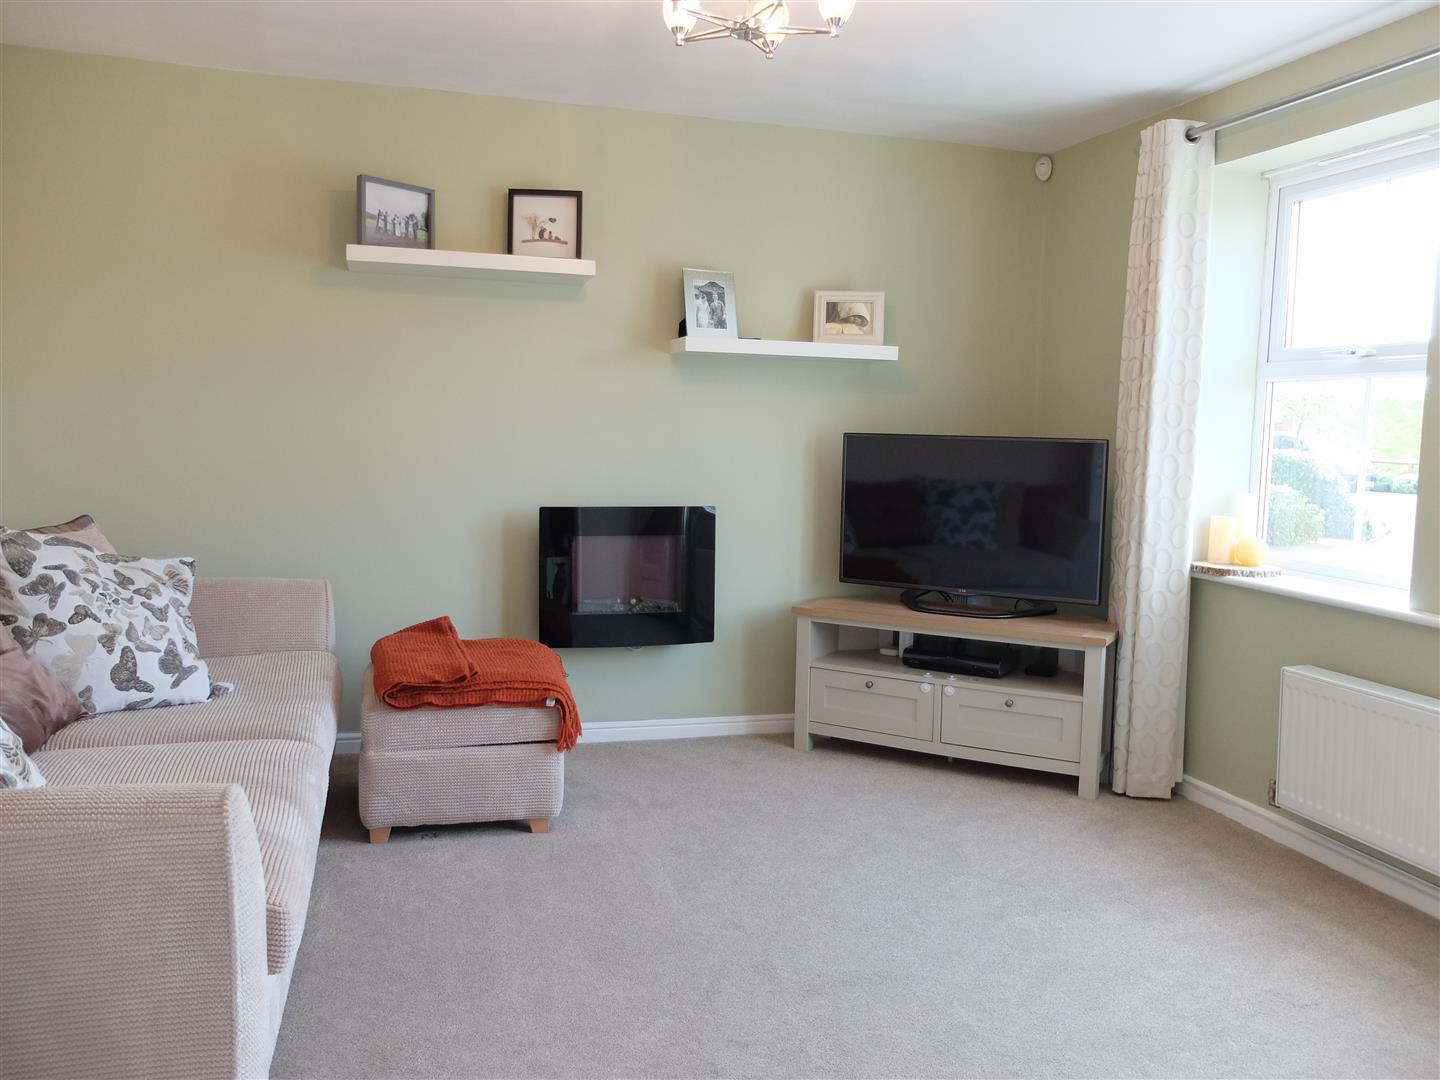 3 Bedrooms House - Detached For Sale 5 Farneside Close Carlisle